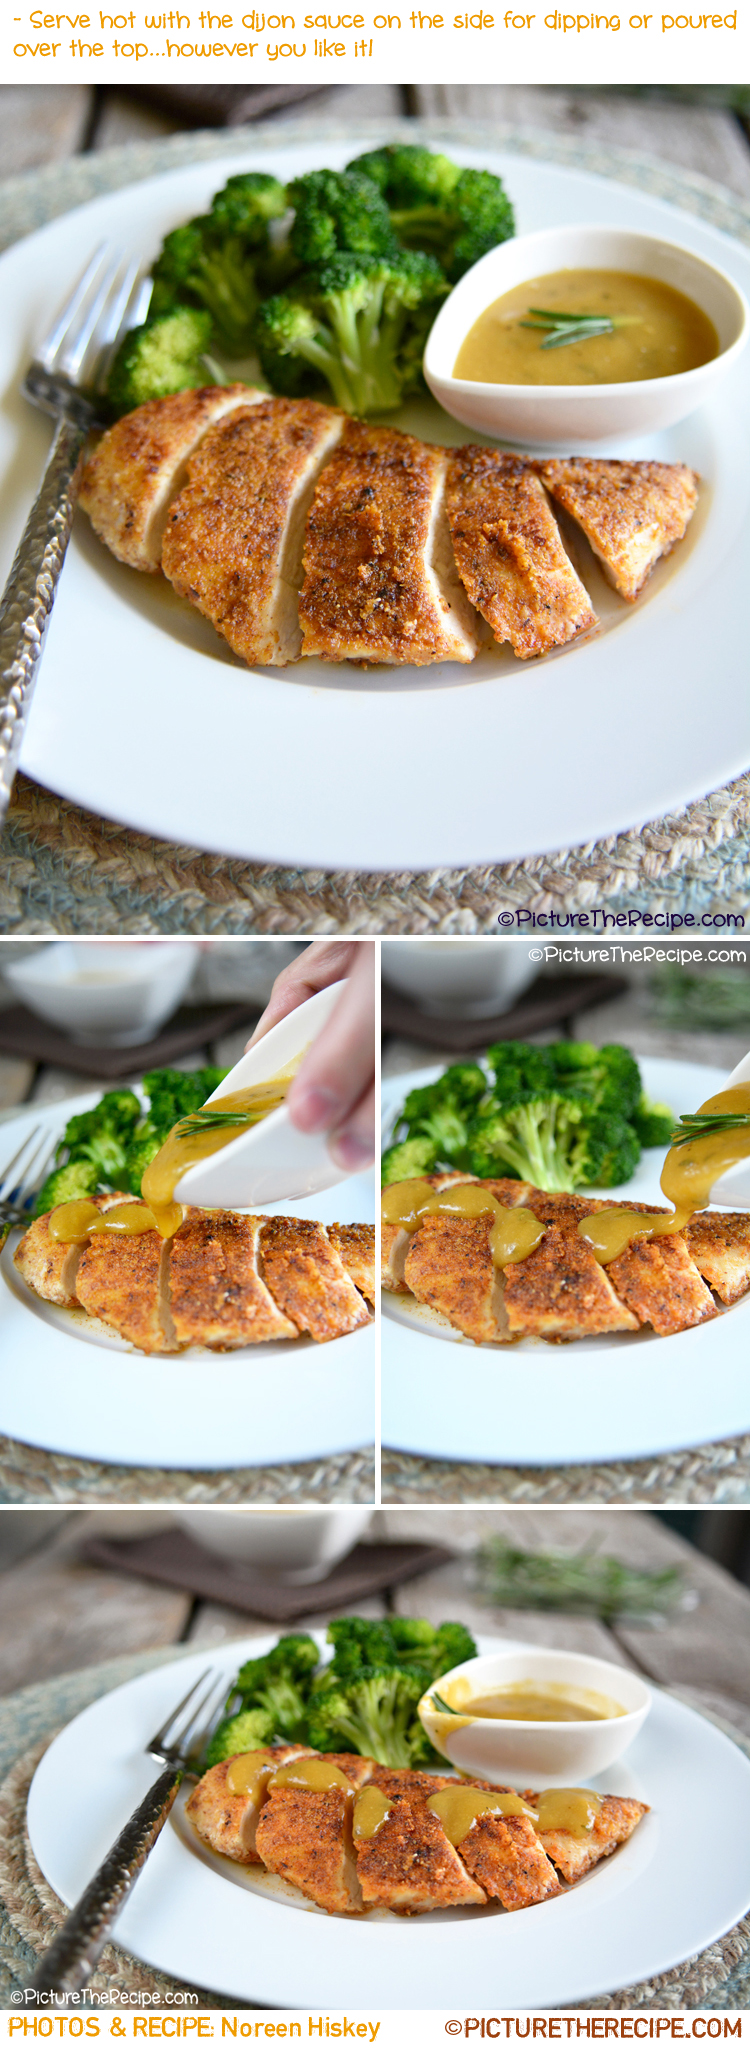 Almond Crusted Chicken with Maple Dijon Sauce by PitcureTheRecipe